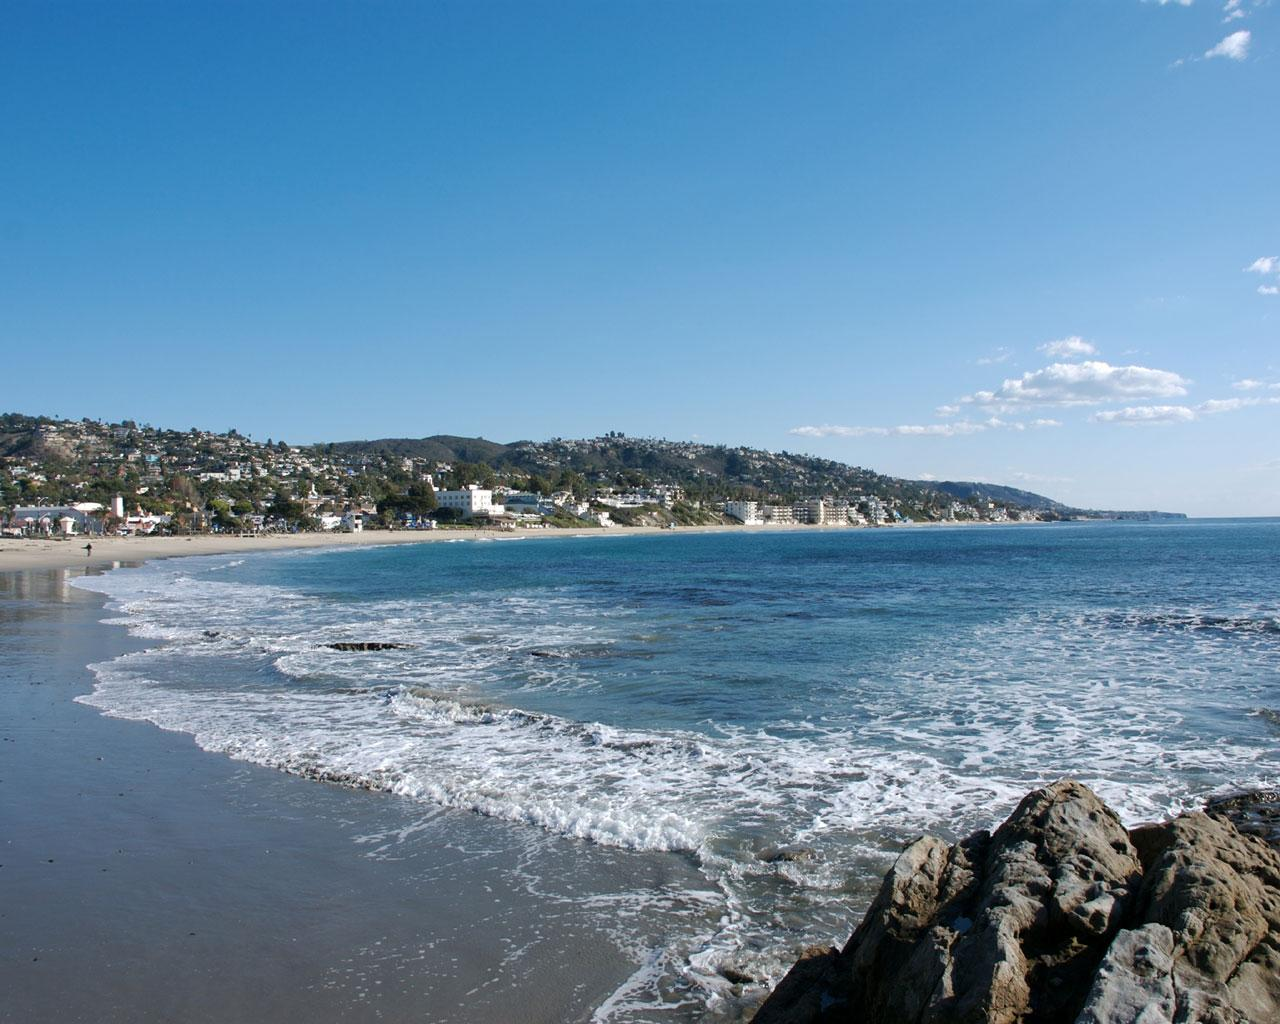 Main Beach - Laguna Beach Wallpaper #1 1280 x 1024